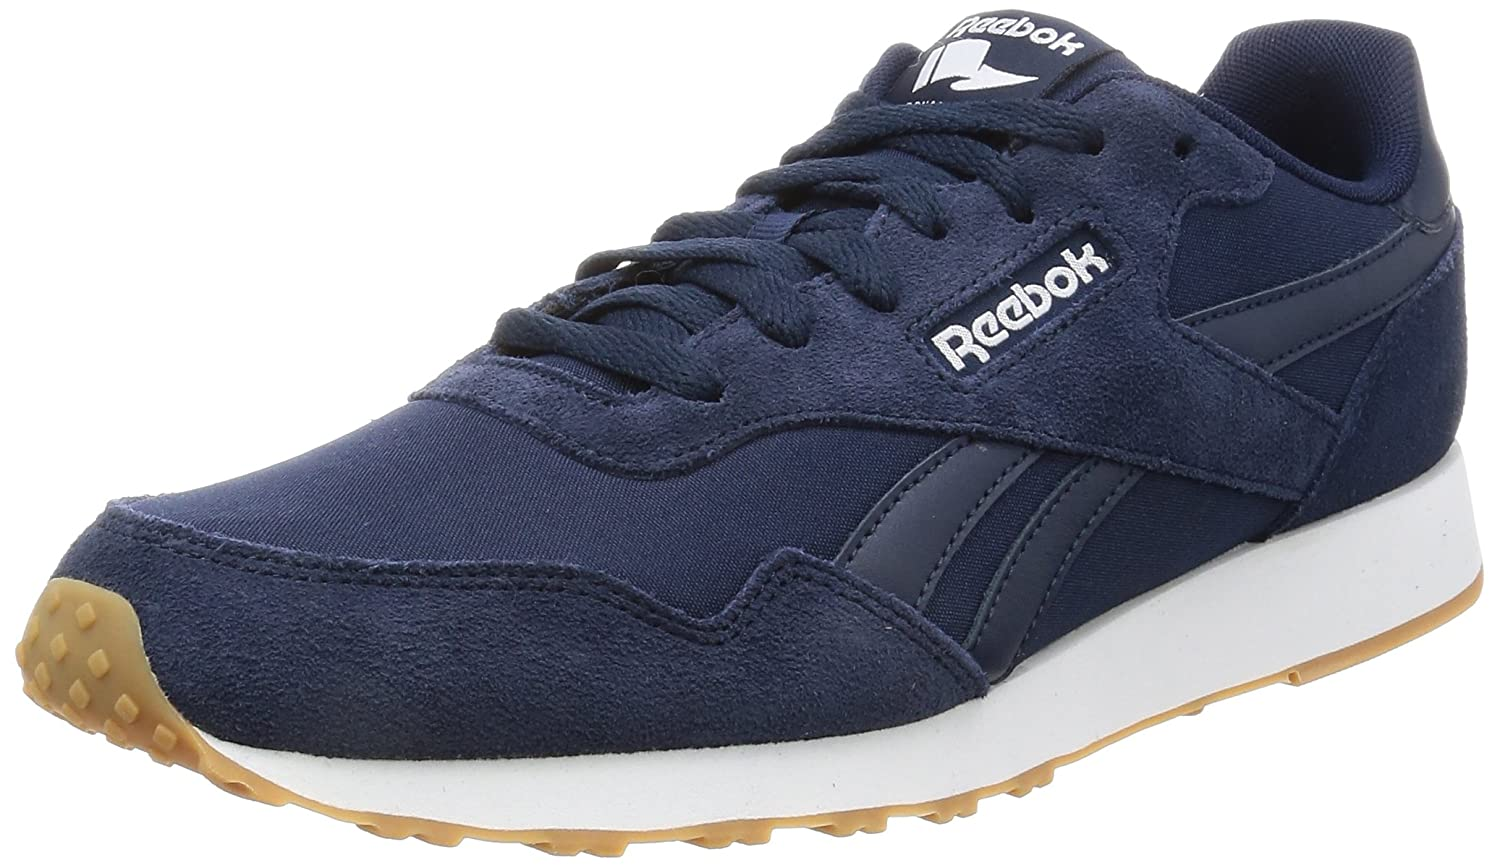 a7208e4b9ec Reebok Men s Royal Ultra Trainers Blue (Collegiate Navy White Gum) 11 UK   Buy Online at Low Prices in India - Amazon.in